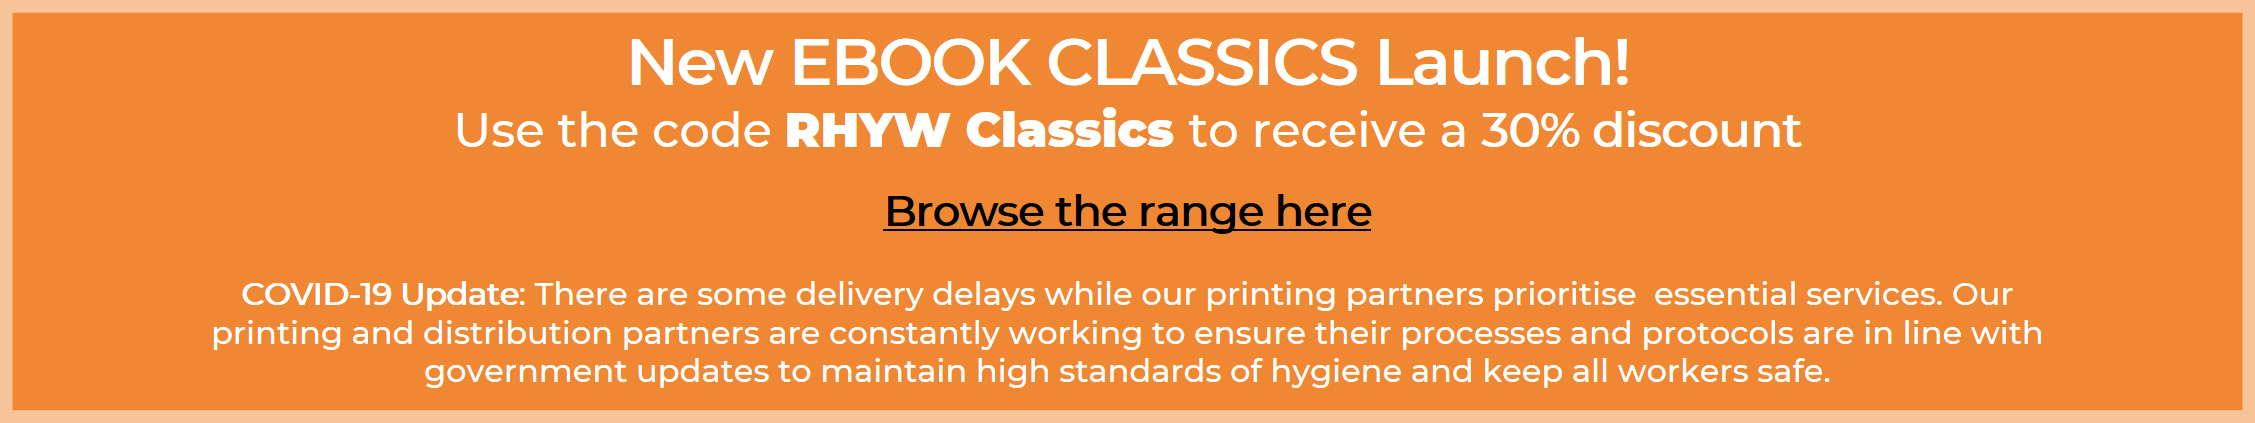 New eBooks Launch! Use the code 'RHYW Classics' to receive a 30% discount.